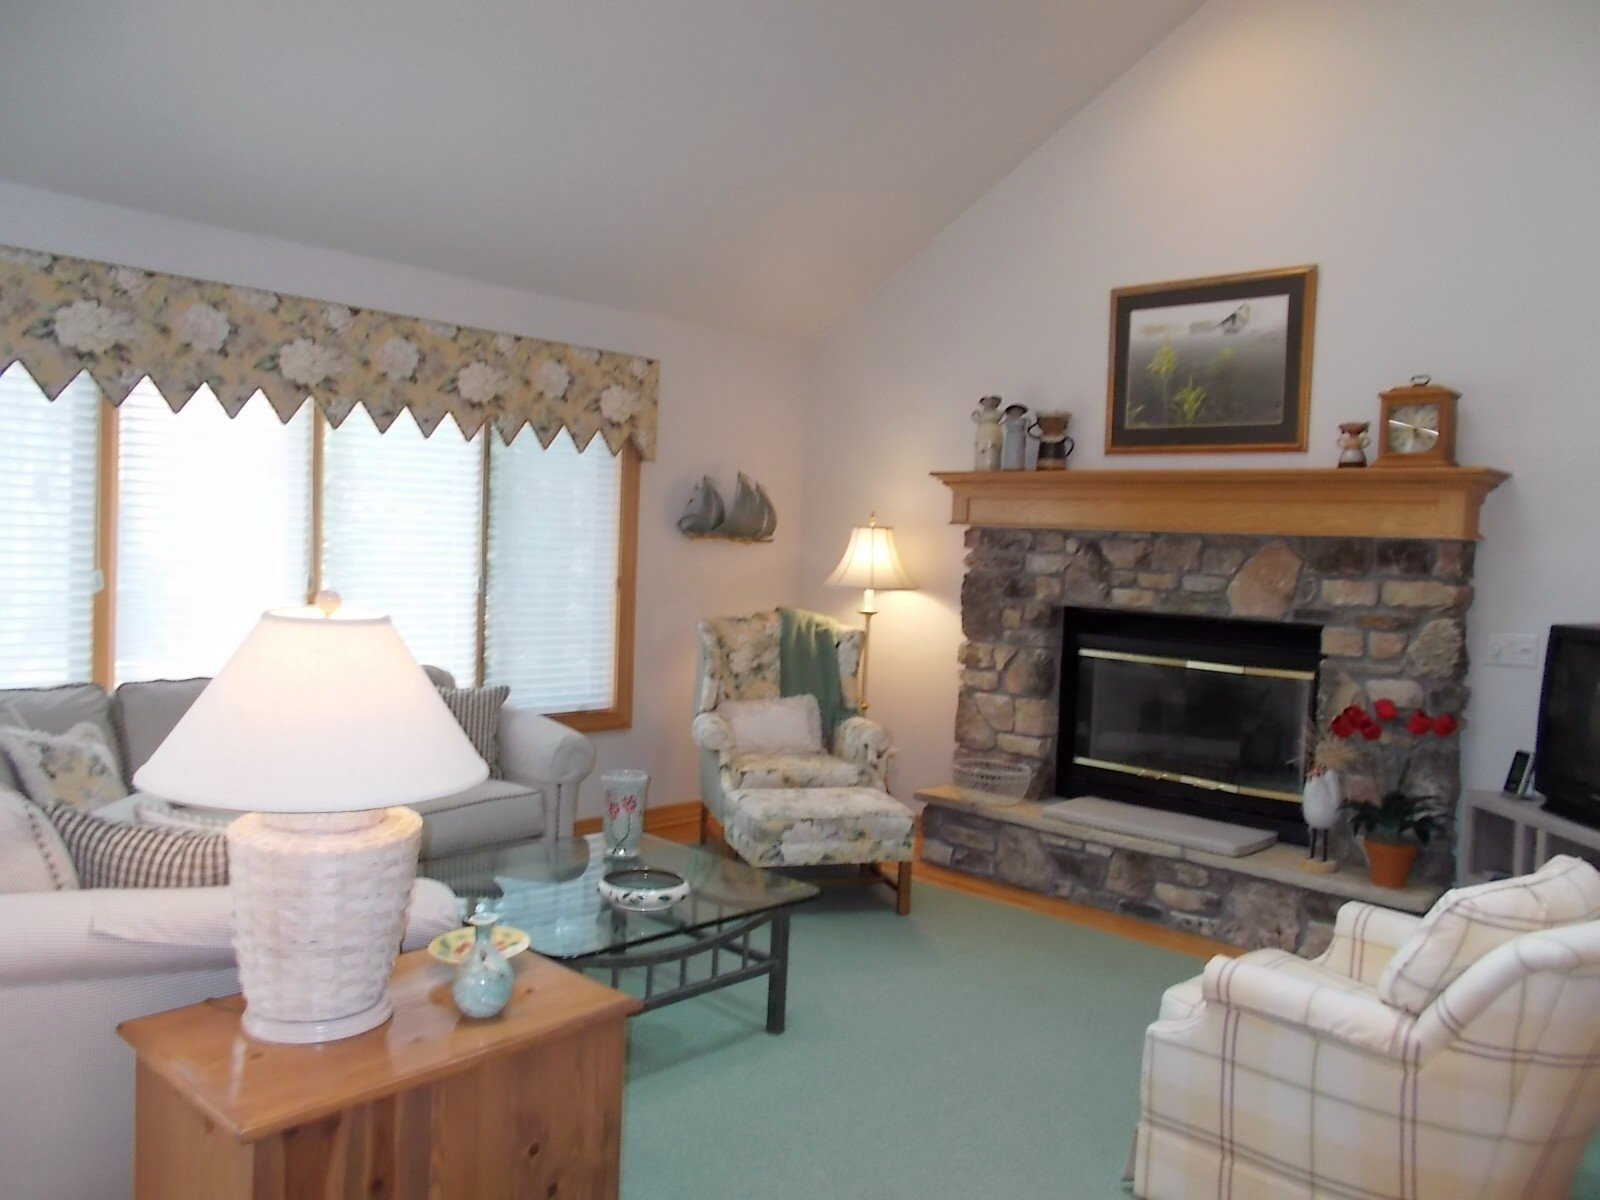 3 bedroom homes for Sale in Sister Bay, WI 54234